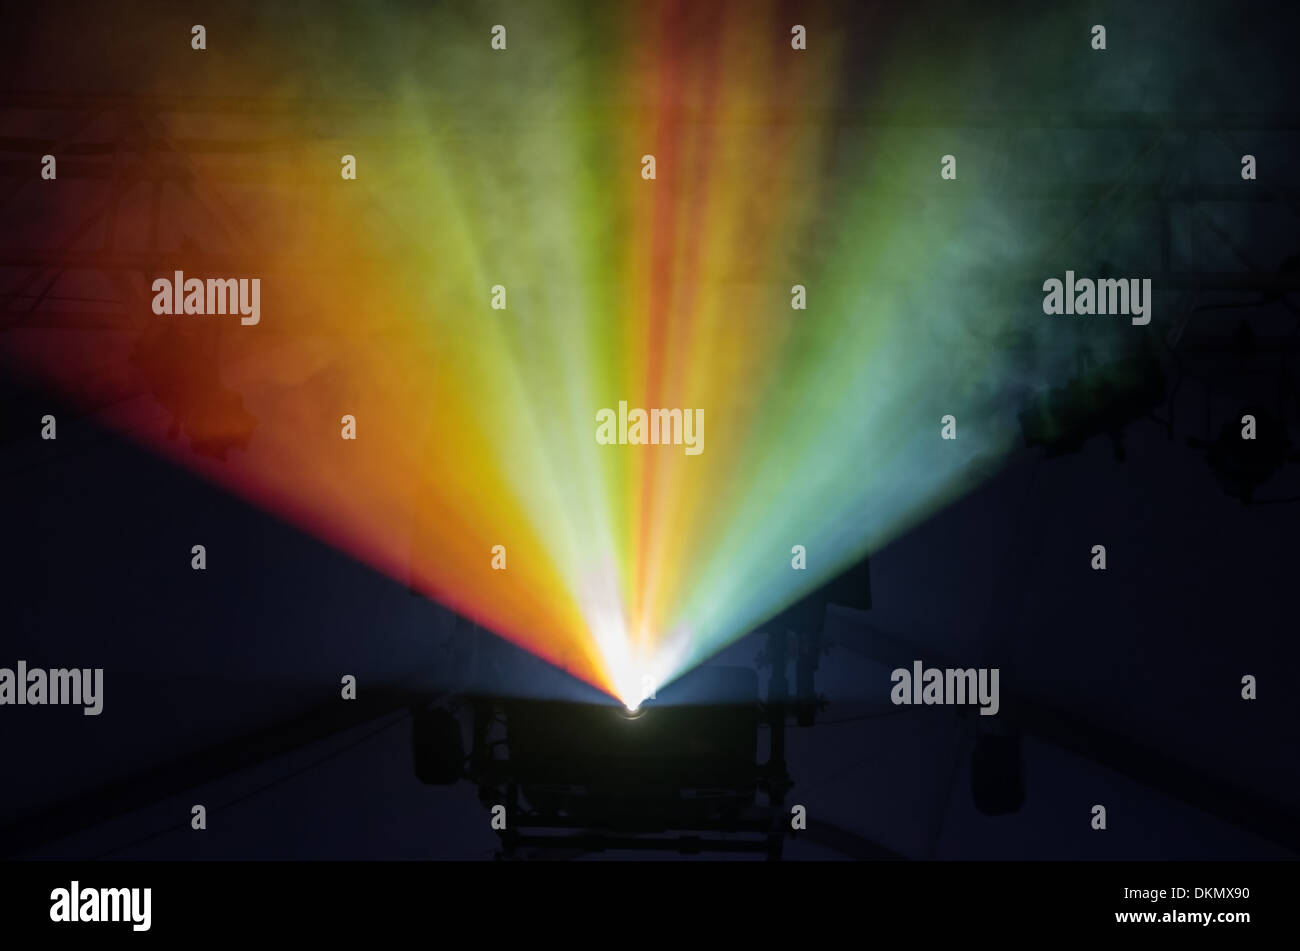 colored stage lights illuminate fog in a rainbow - Stock Image